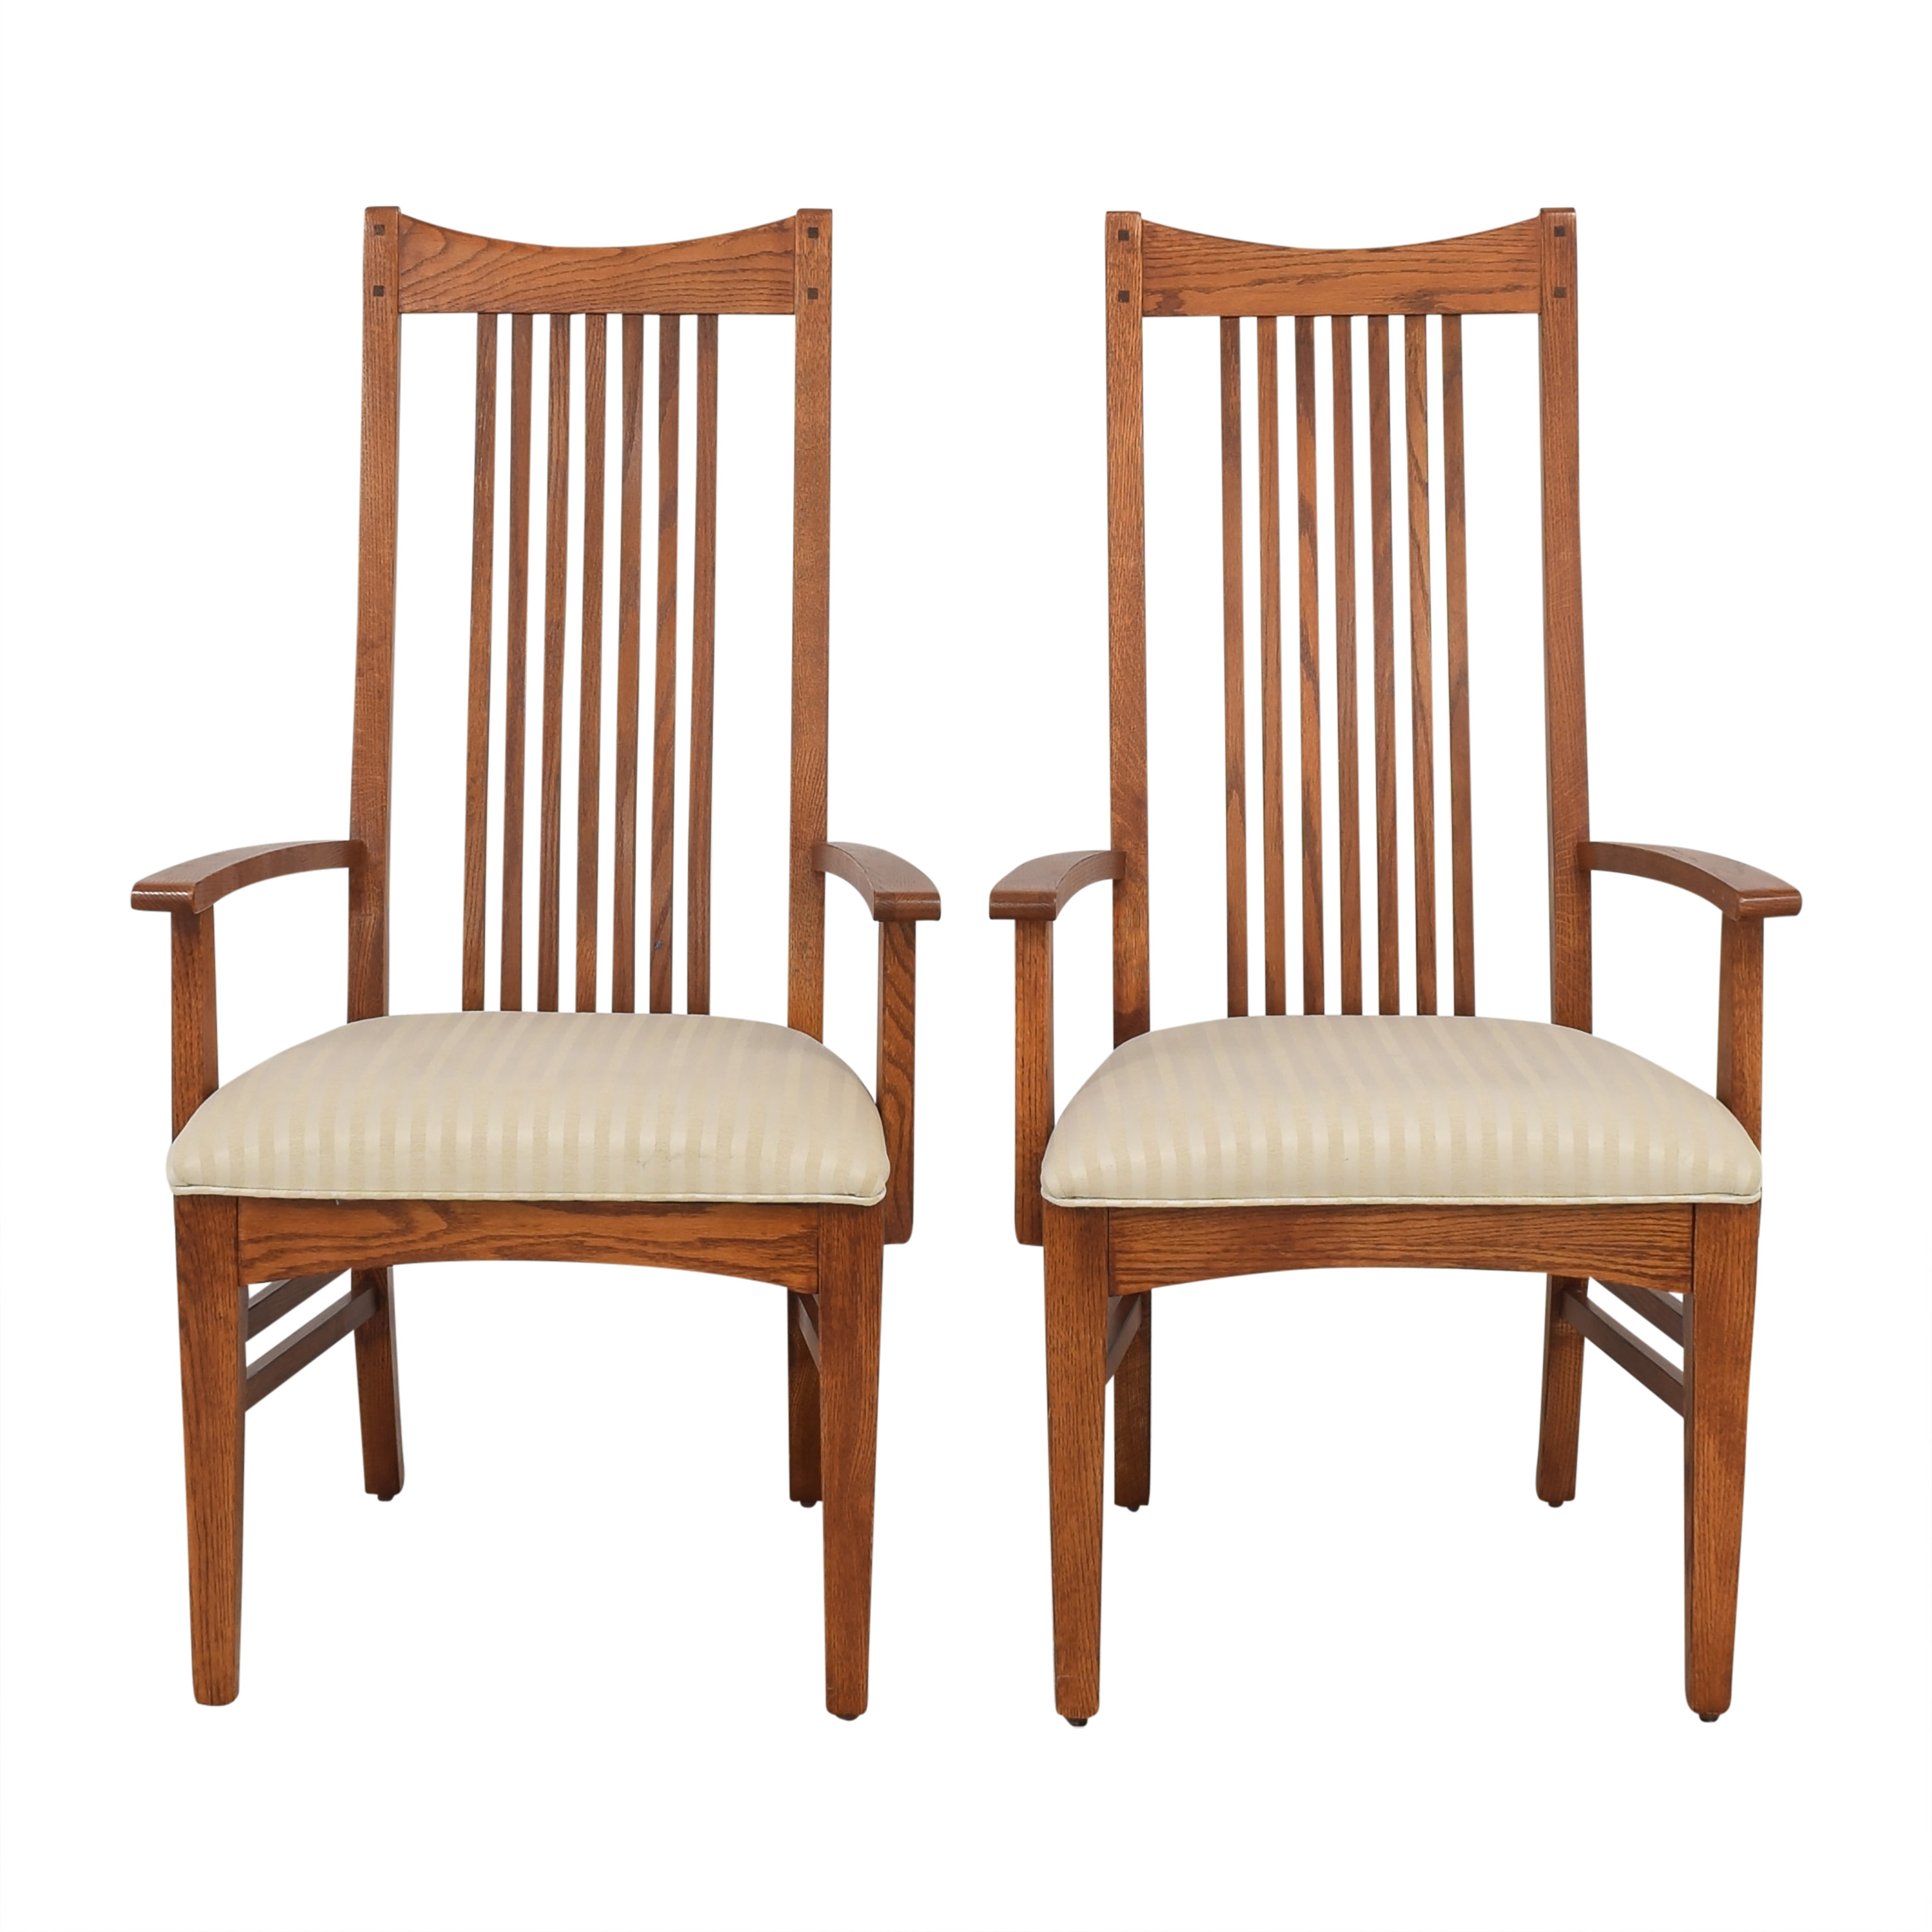 Lexington Furniture Lexington Furniture Arts & Crafts Dining Arm Chairs Dining Chairs